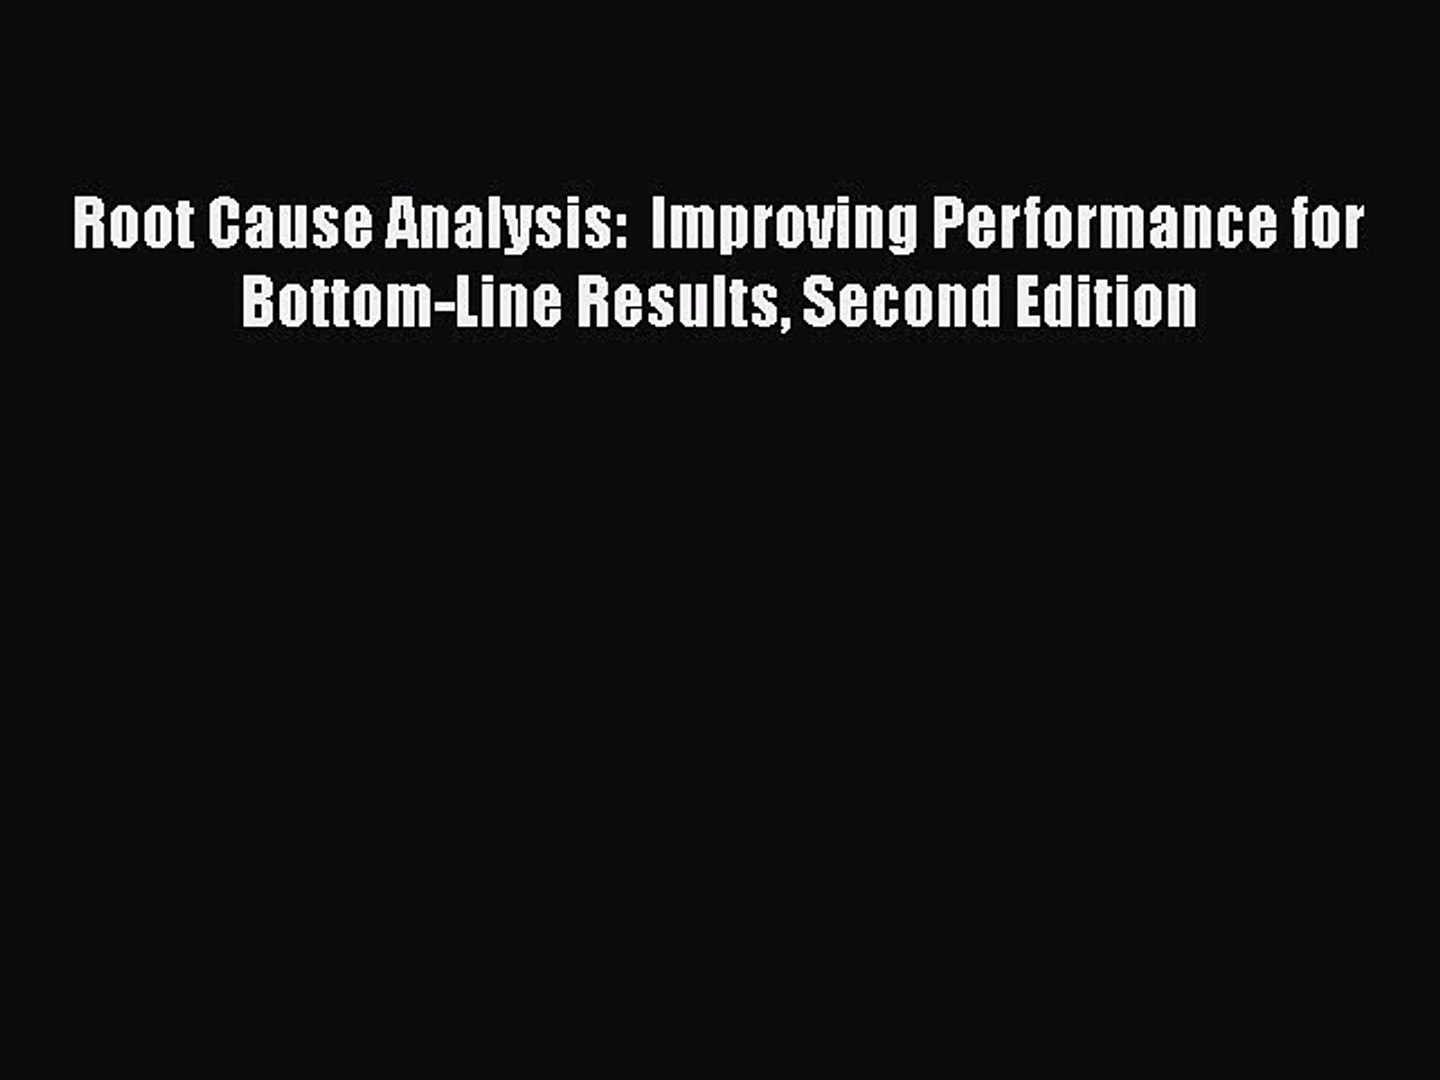 Download Root Cause Analysis:  Improving Performance for Bottom-Line Results Second Edition